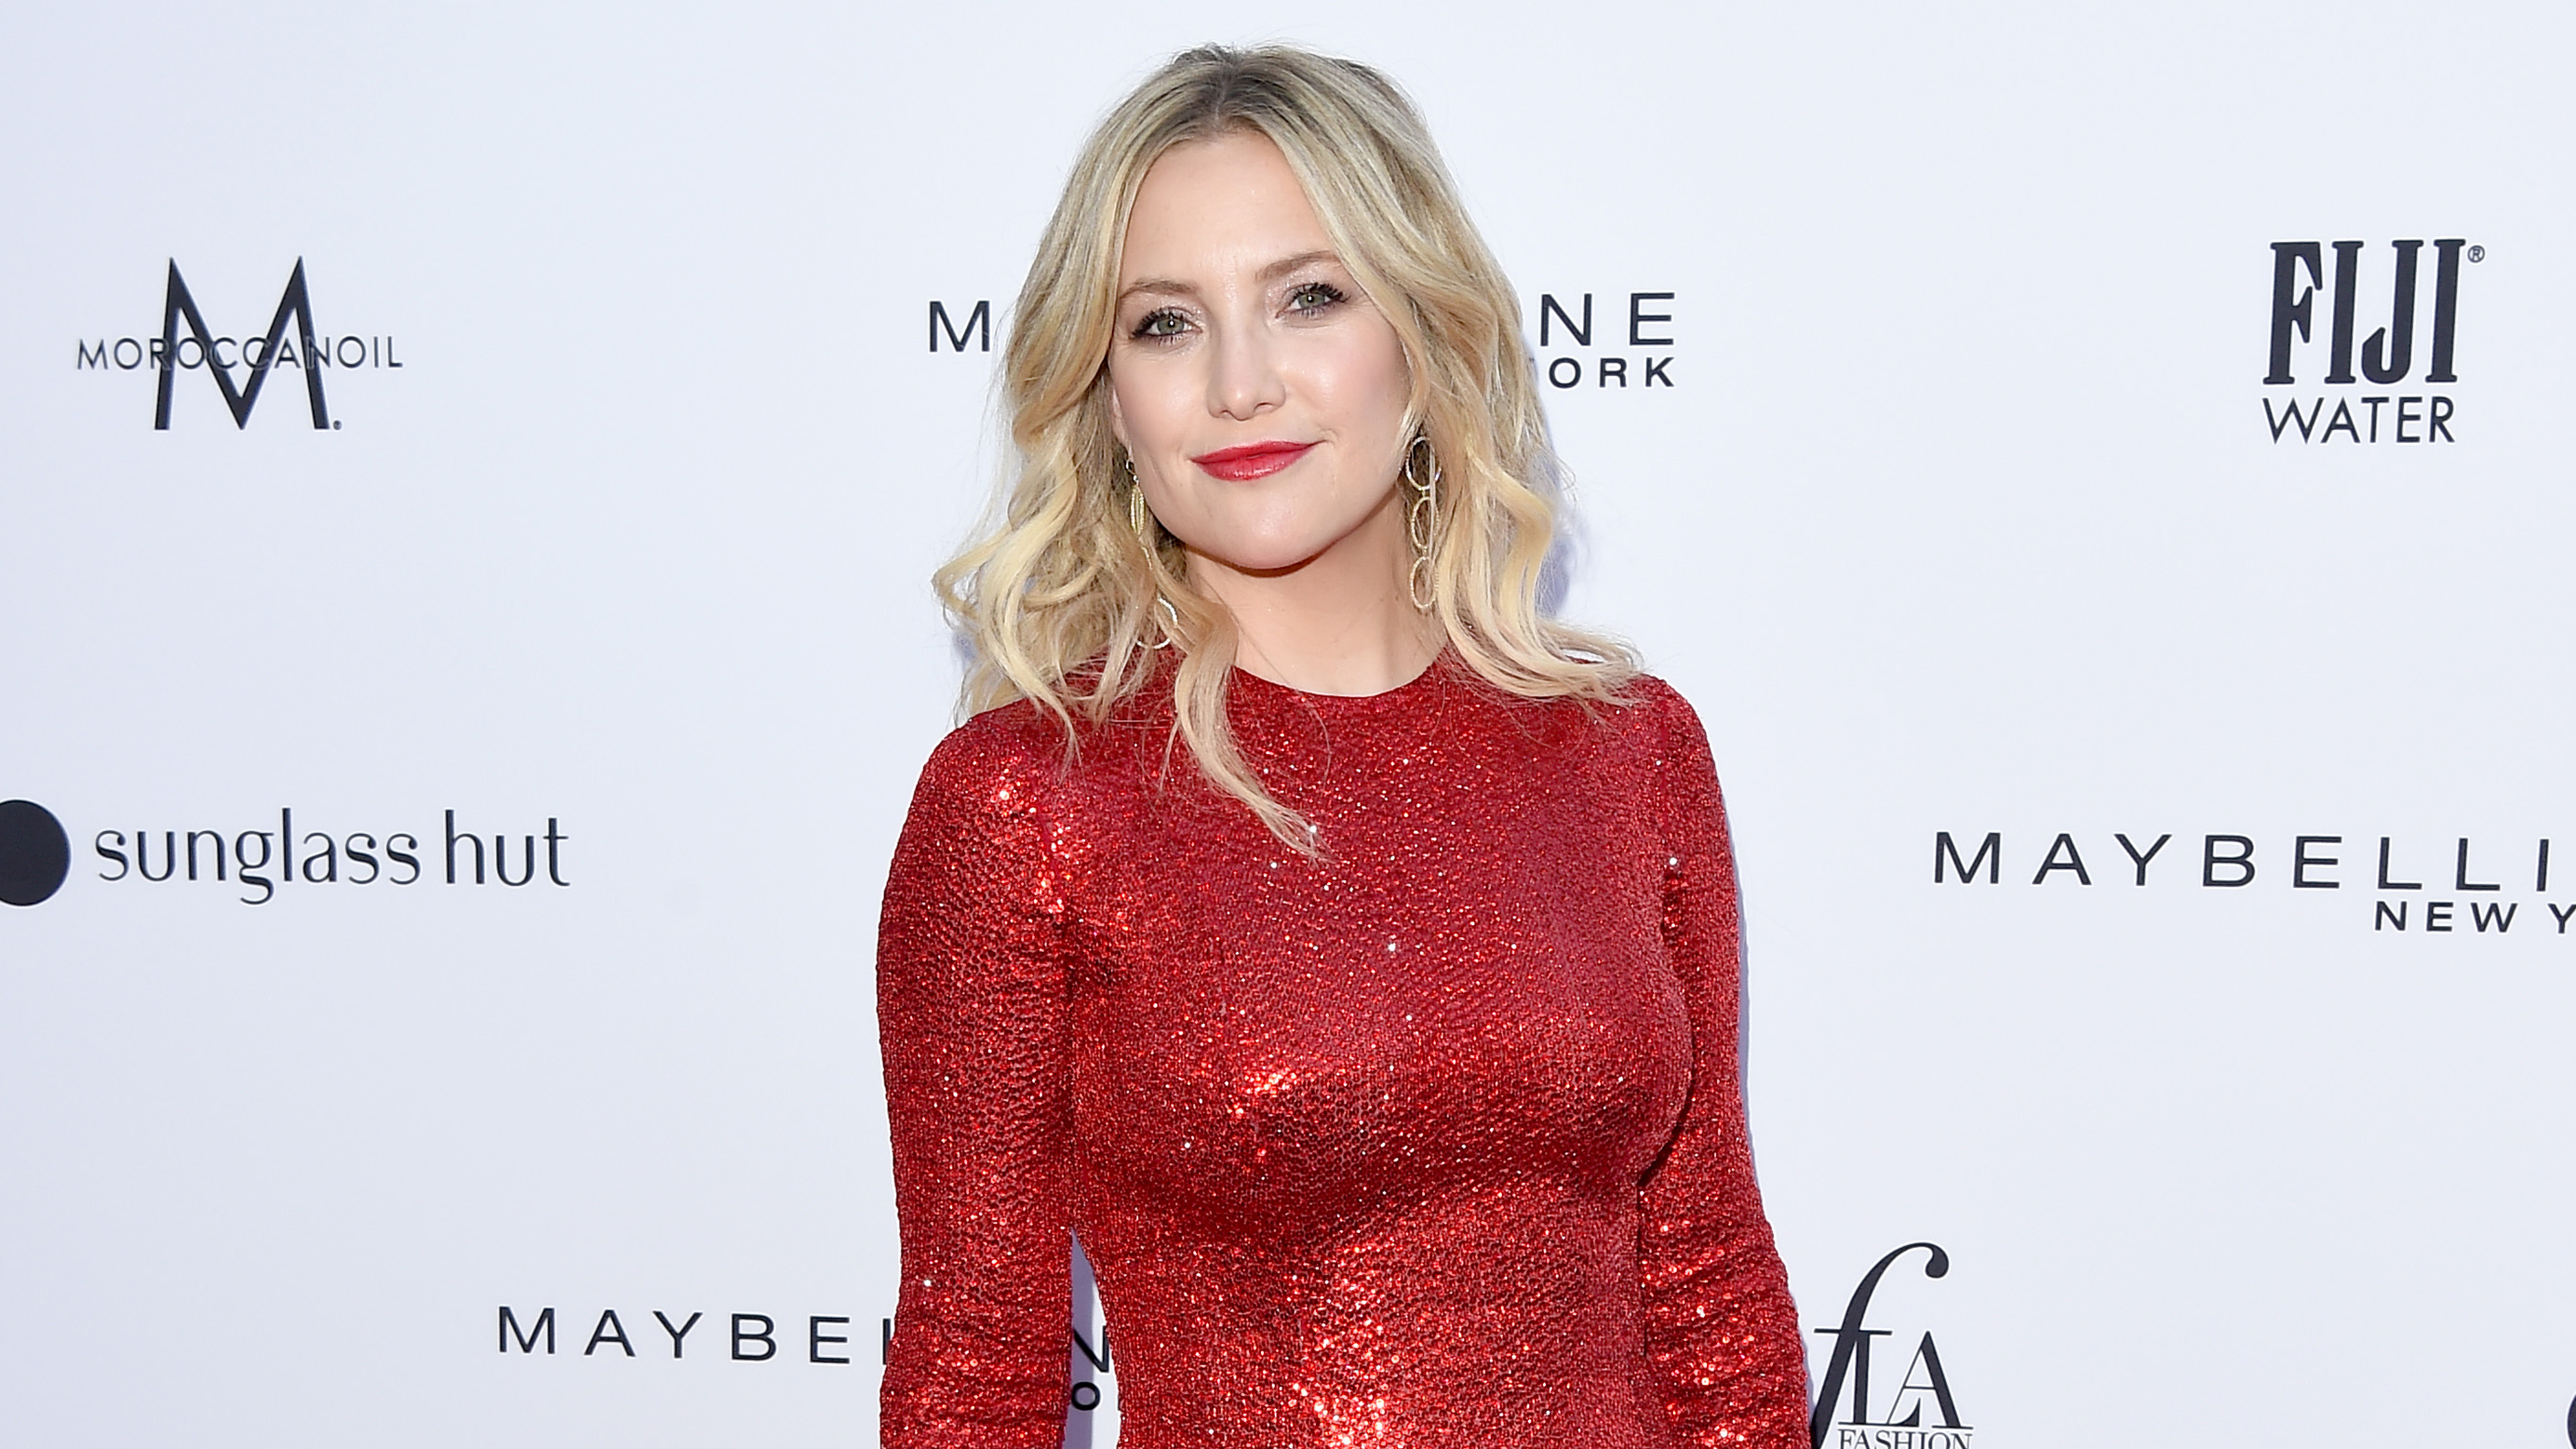 ExclusiveKate Hudson 'Feels Fantastic' About Her Post-Baby Body Nearly 9 Months Since Welcoming Daughter Rani Rose